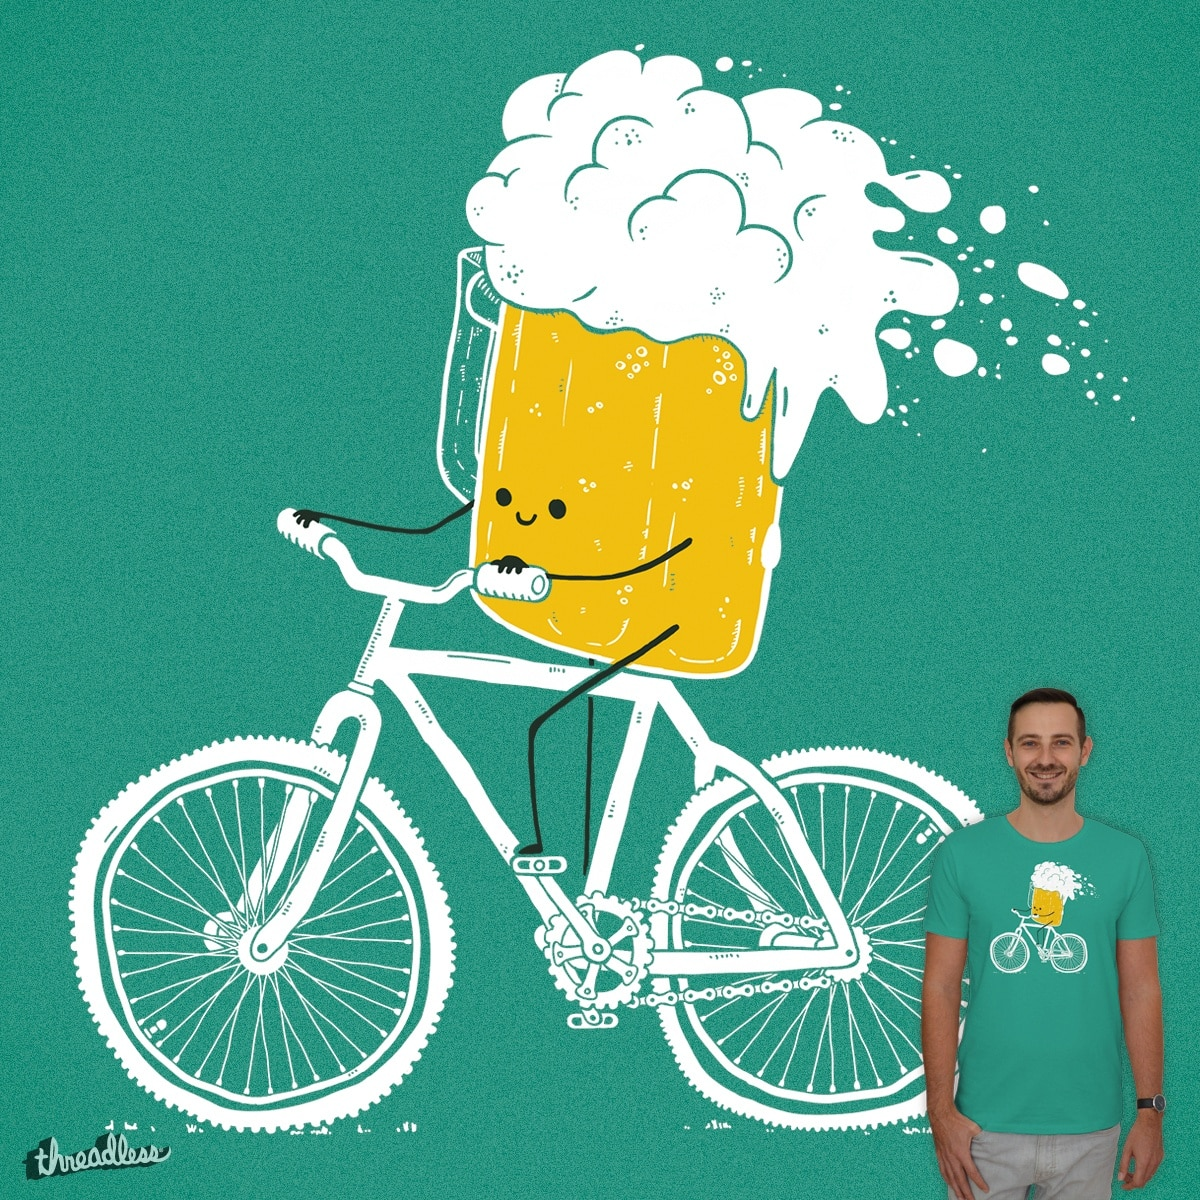 Tour de beer by Mishan D on Threadless